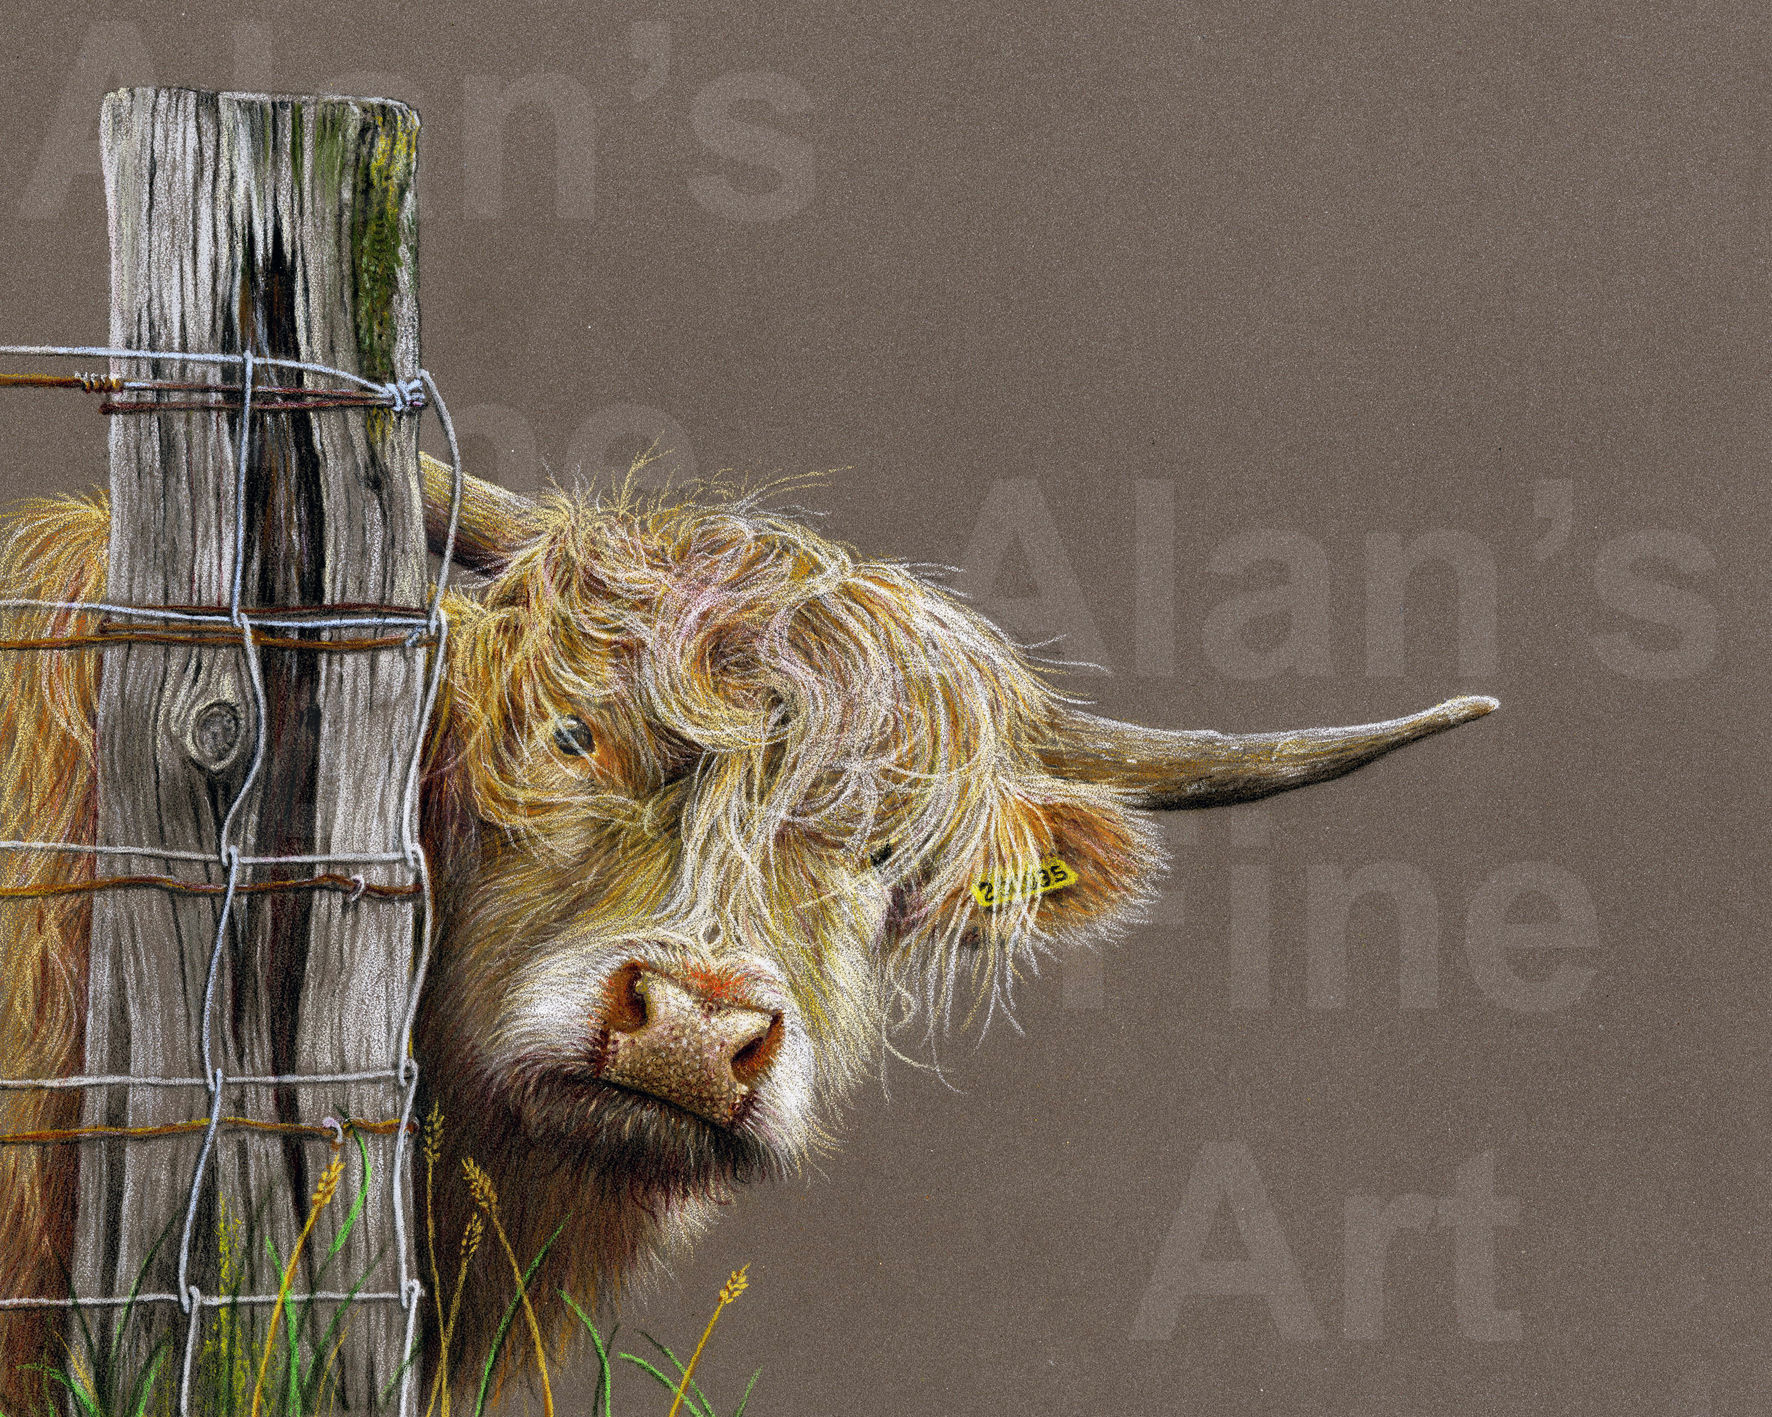 300 Highland Cow Annscan062 150x120 55b 30c 15red 10yellow cropped with watermark